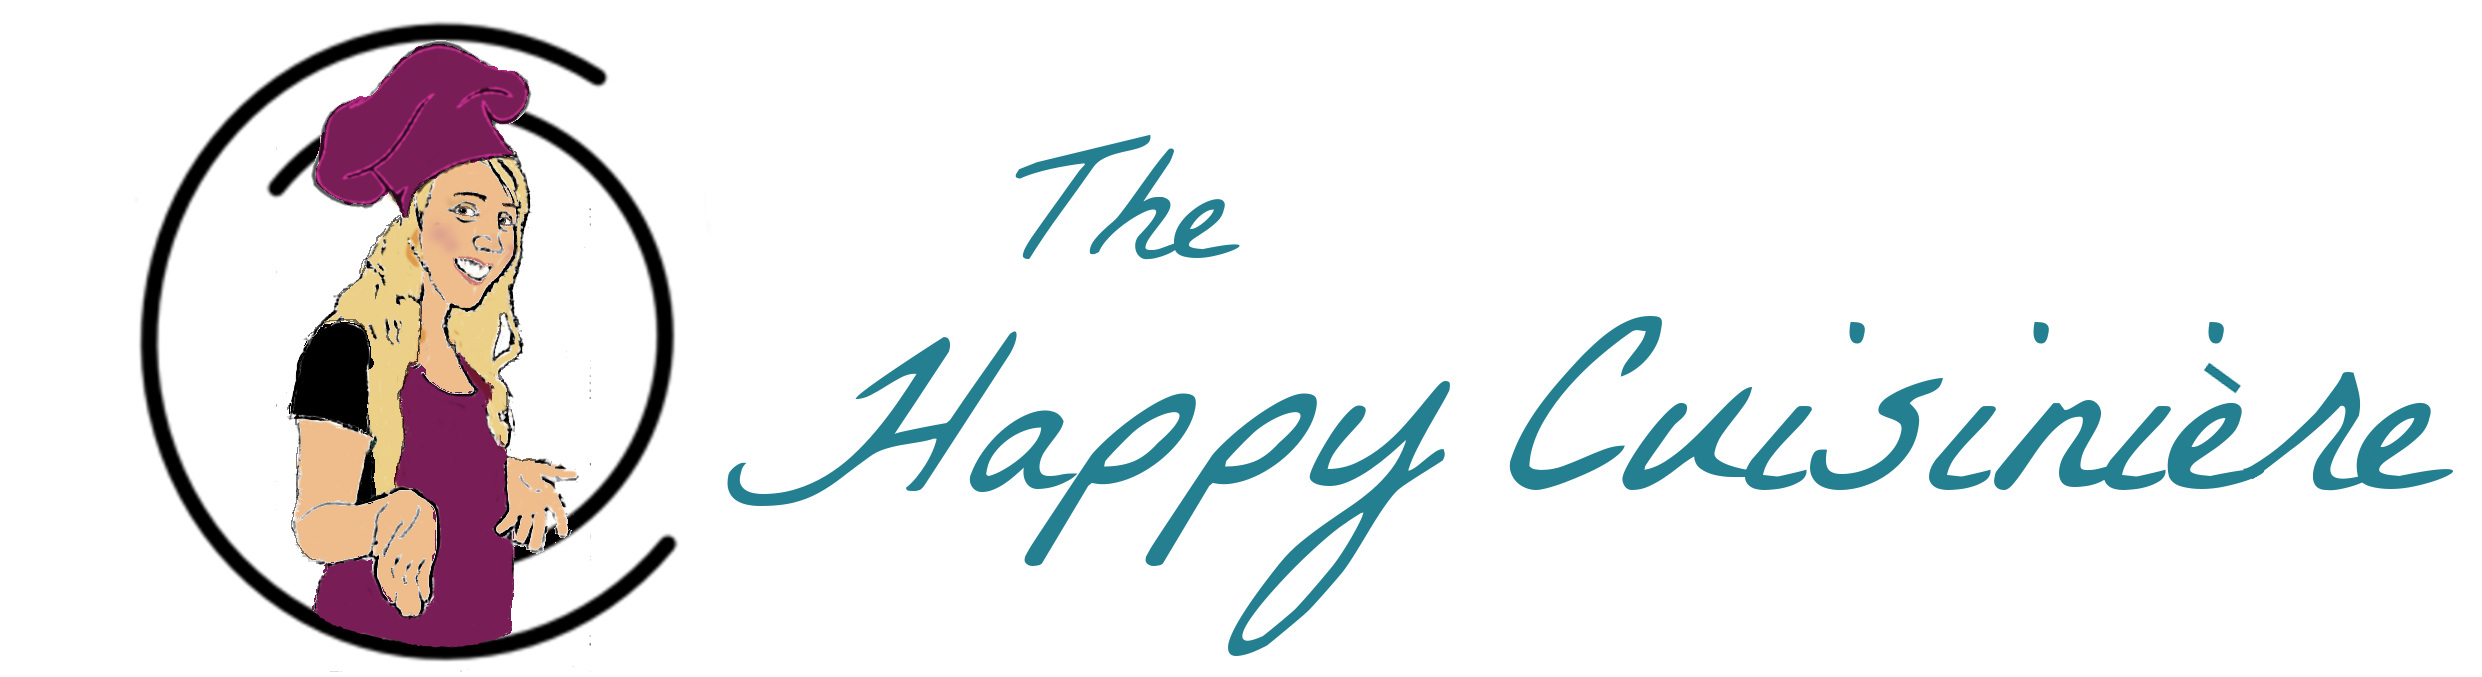 The Happy Cuisiniere